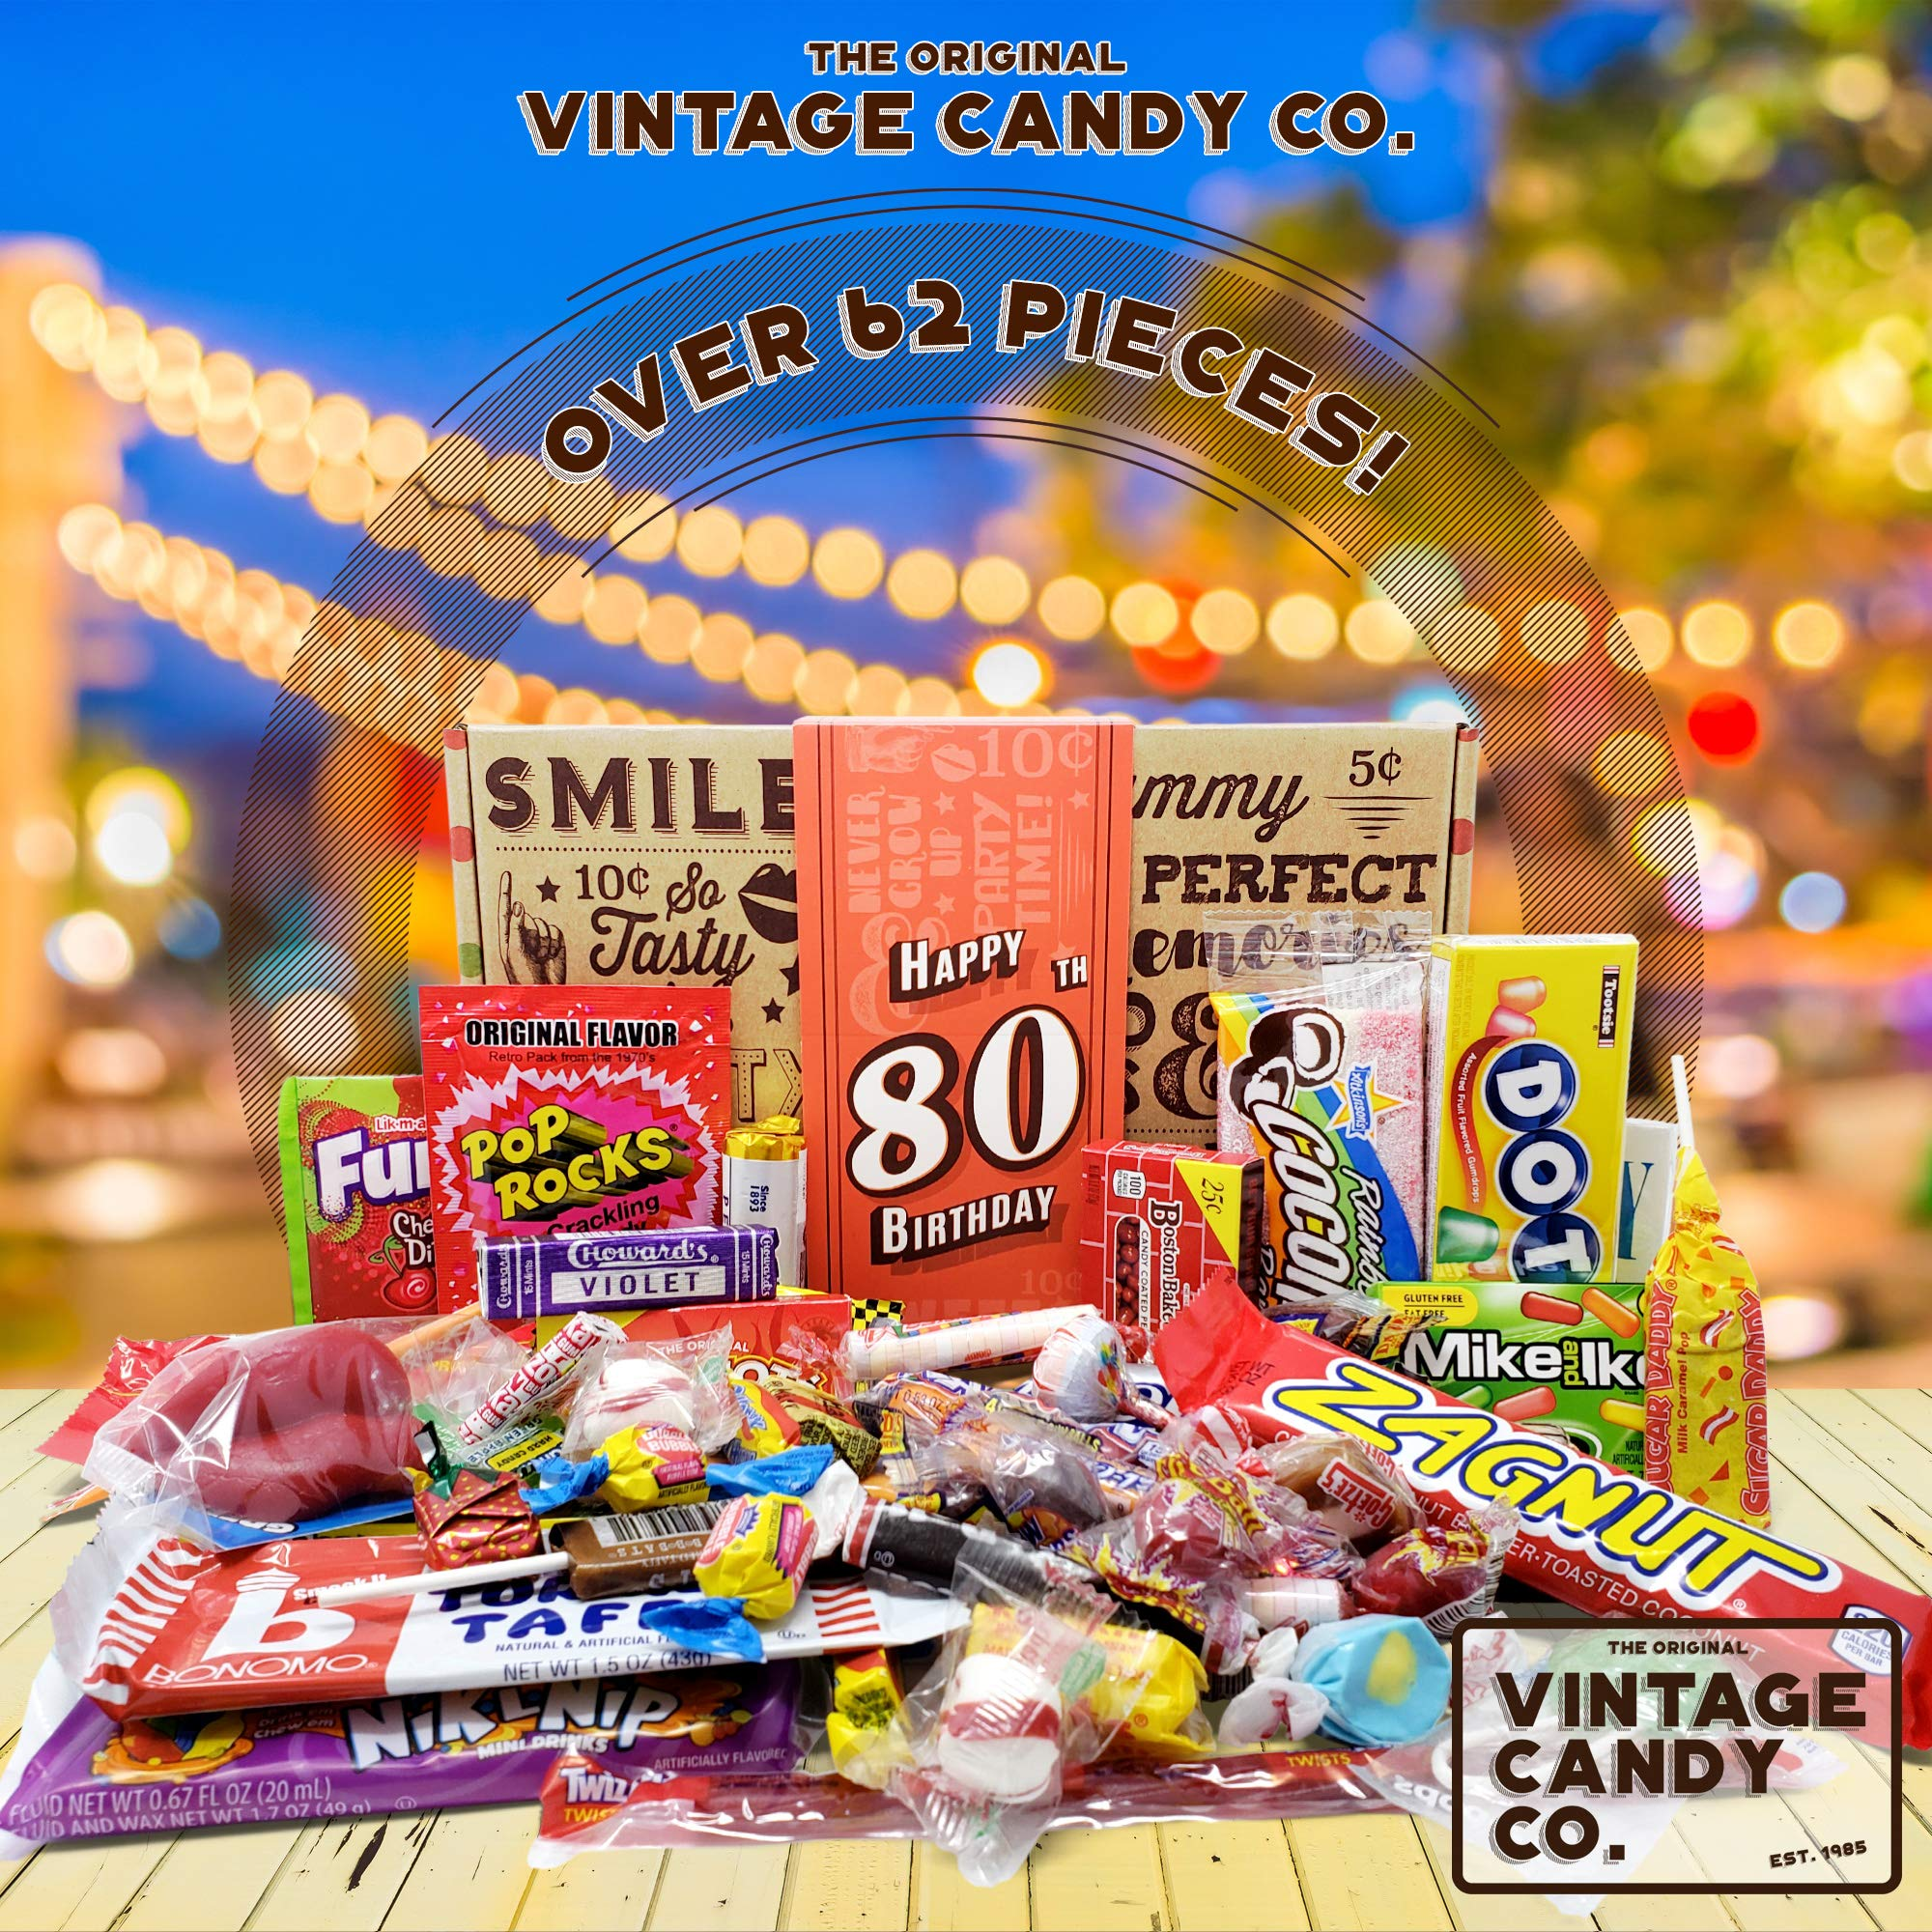 VINTAGE CANDY CO. 80TH BIRTHDAY RETRO CANDY GIFT BOX - 1939 Decade Nostalgic Childhood Candies - Fun Gag Gift Basket for Milestone EIGHTIETH Birthday - PERFECT For Man Or Woman Turning 80 Years Old by Vintage Candy Co. (Image #2)